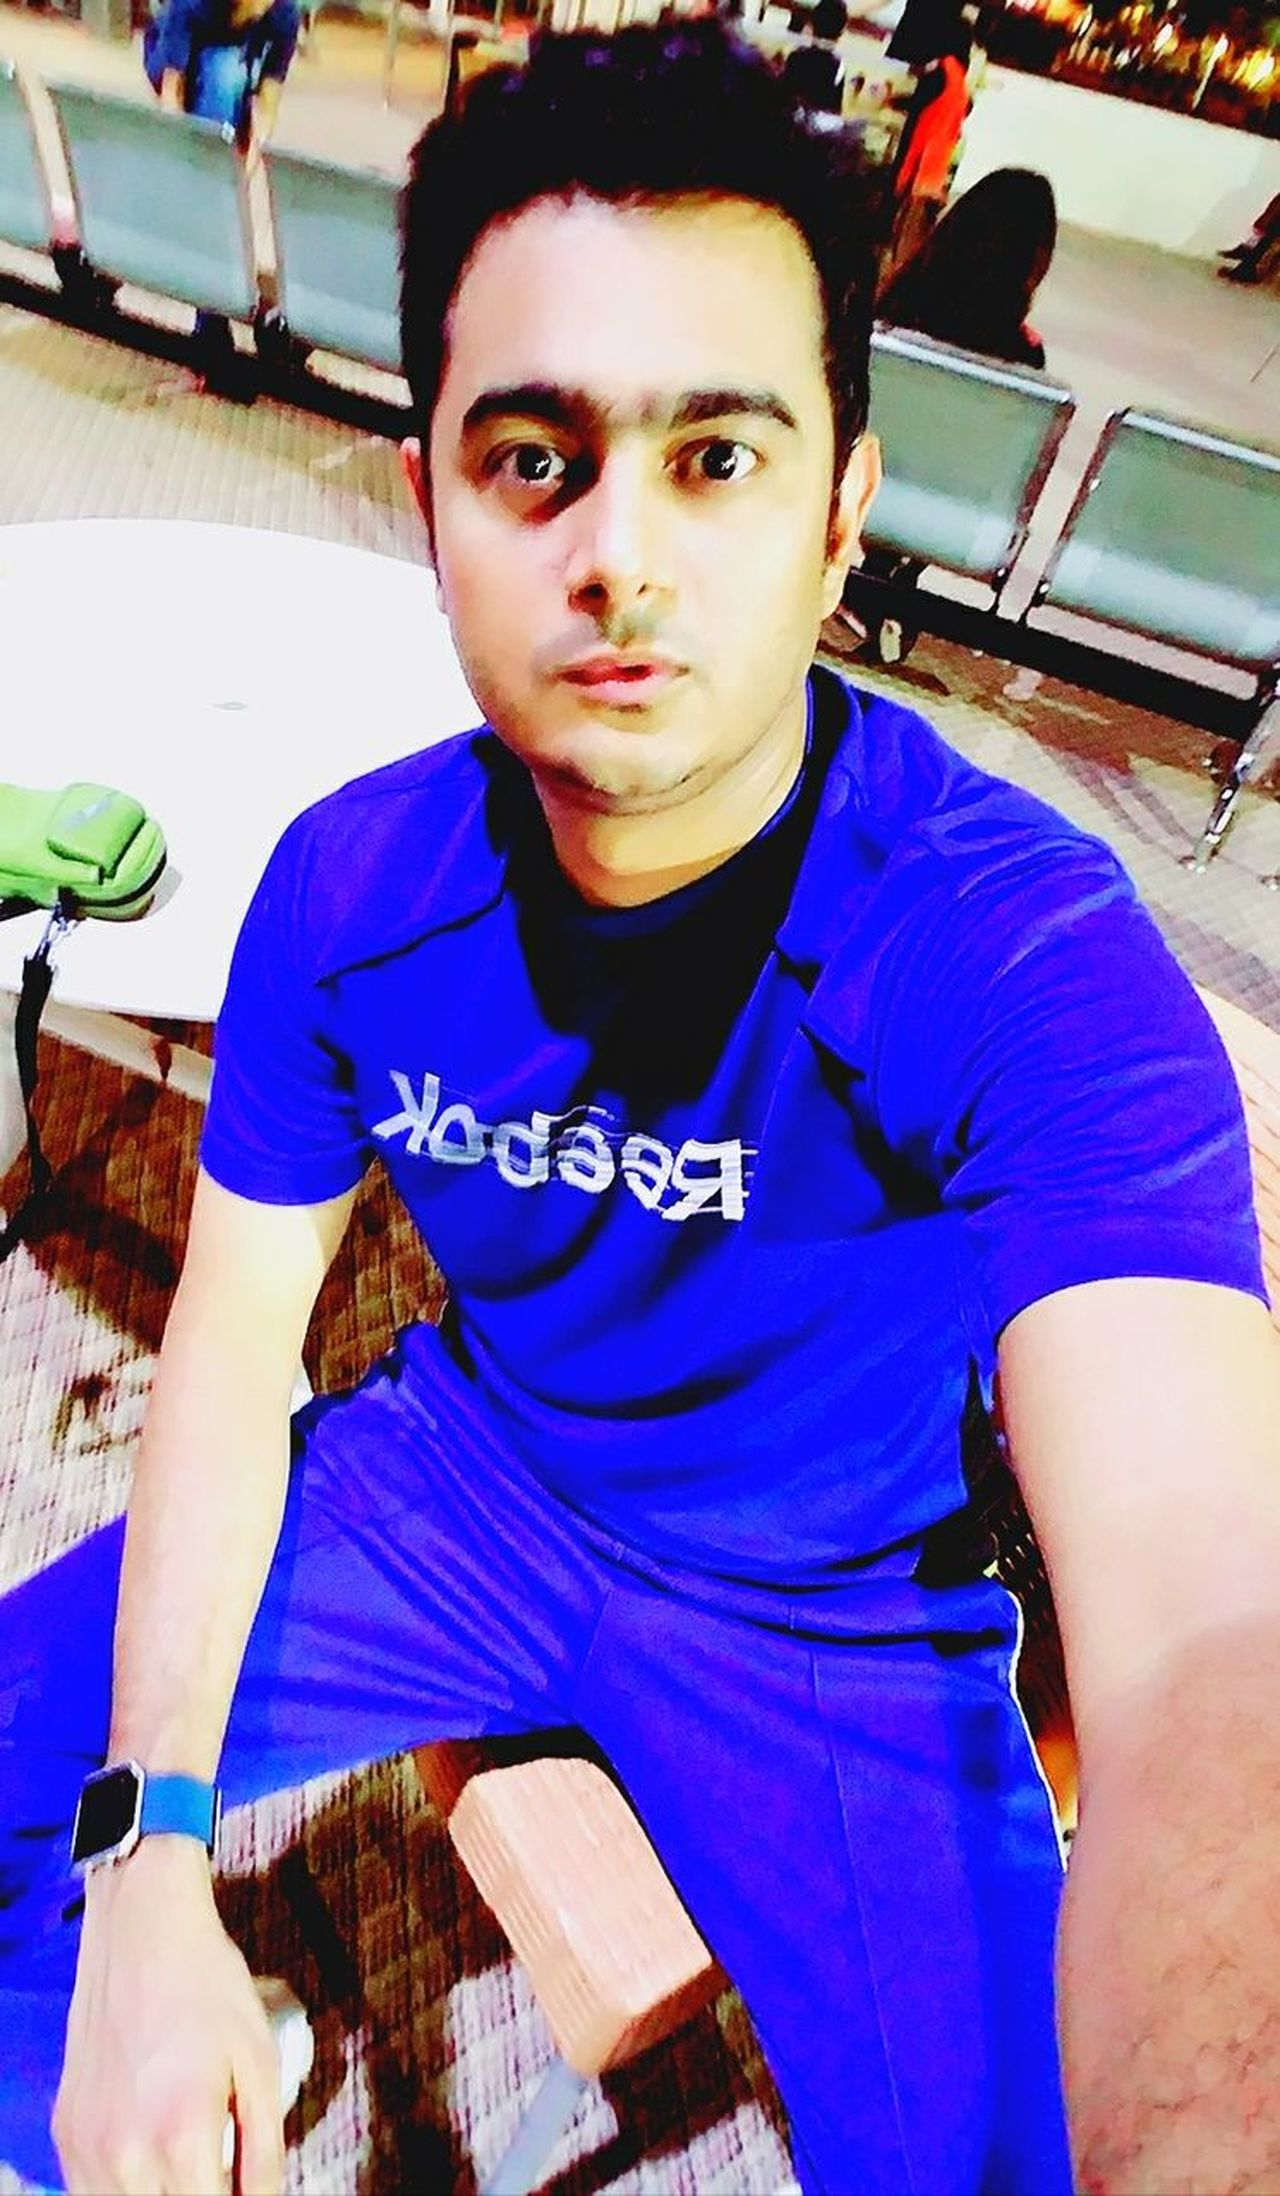 Front View Lifestyles One Person Looking At Camera Leisure Activity Outdoors Happiness Excercise Fitnesslifestyle  HERO Today's Hot Look Hello World That's Me Glamour Pakistan Actor Rathod Check This Out Karachi Man Hi! Sport Confidence  Casual Clothing Me